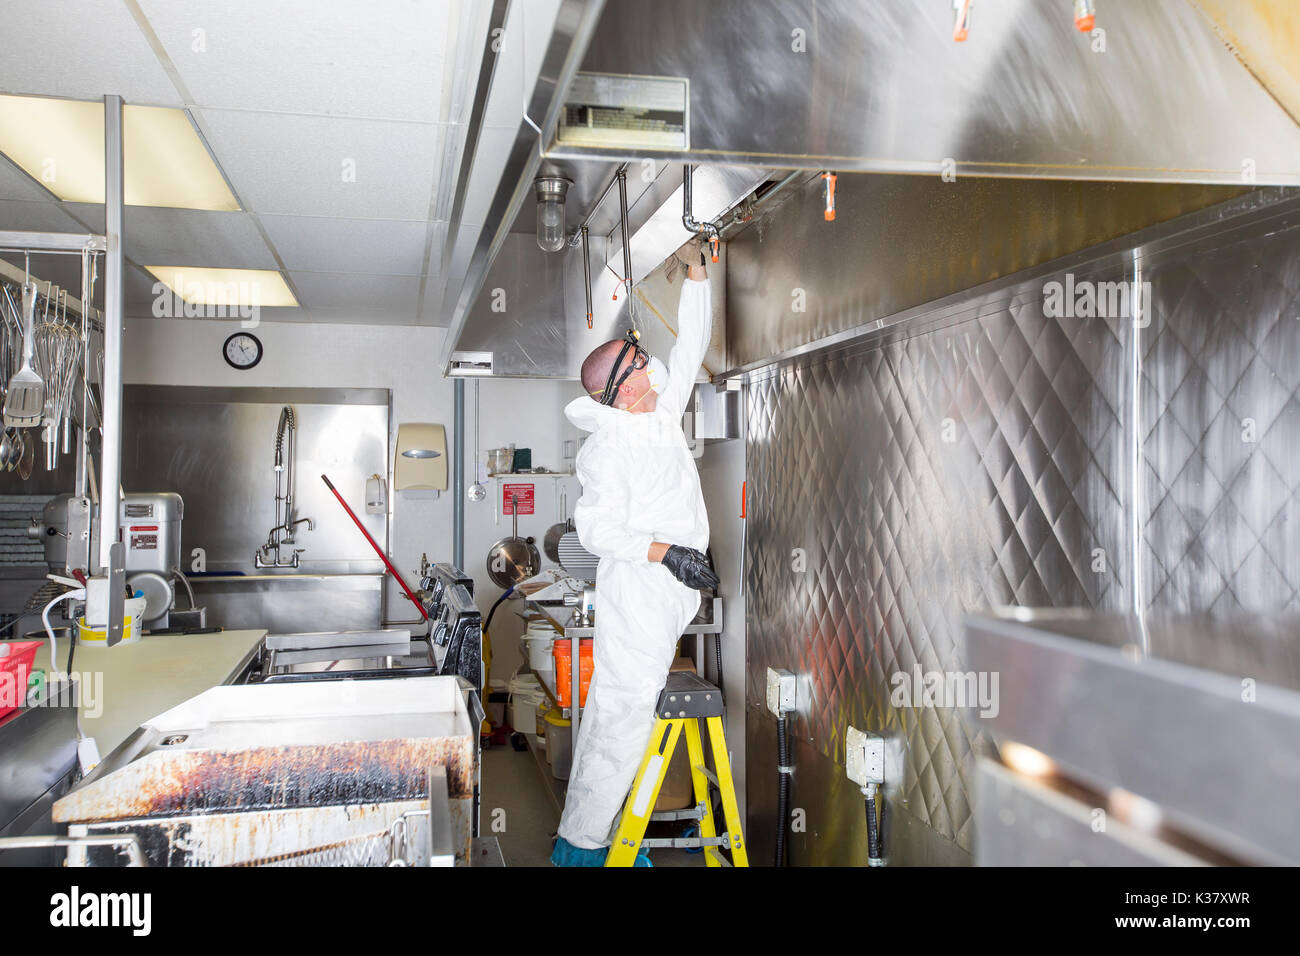 Commercial kitchen worker washing up at sink in professional kitchen - Stock Image